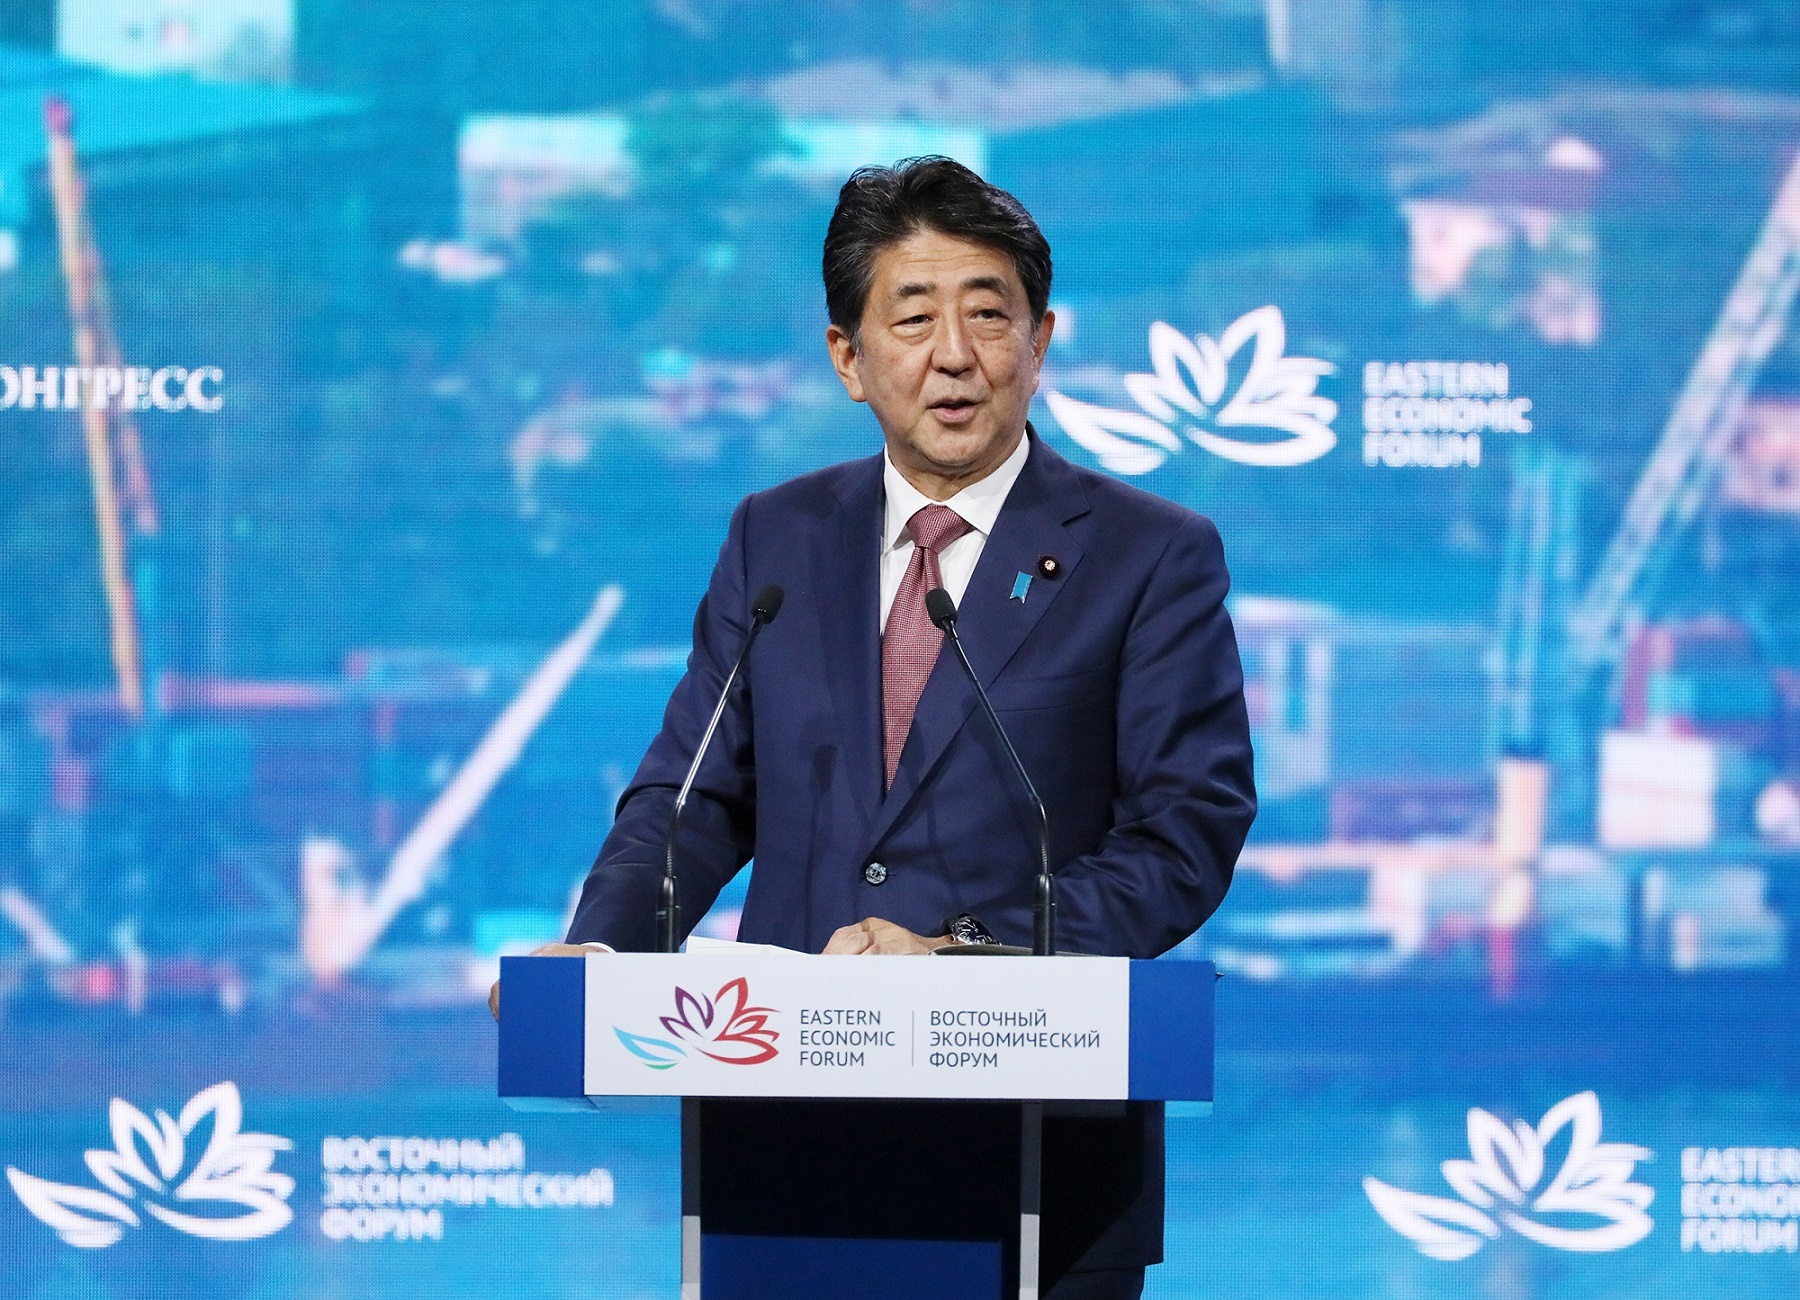 Photograph of the Prime Minister giving a speech at the plenary session of the Eastern Economic Forum (1)